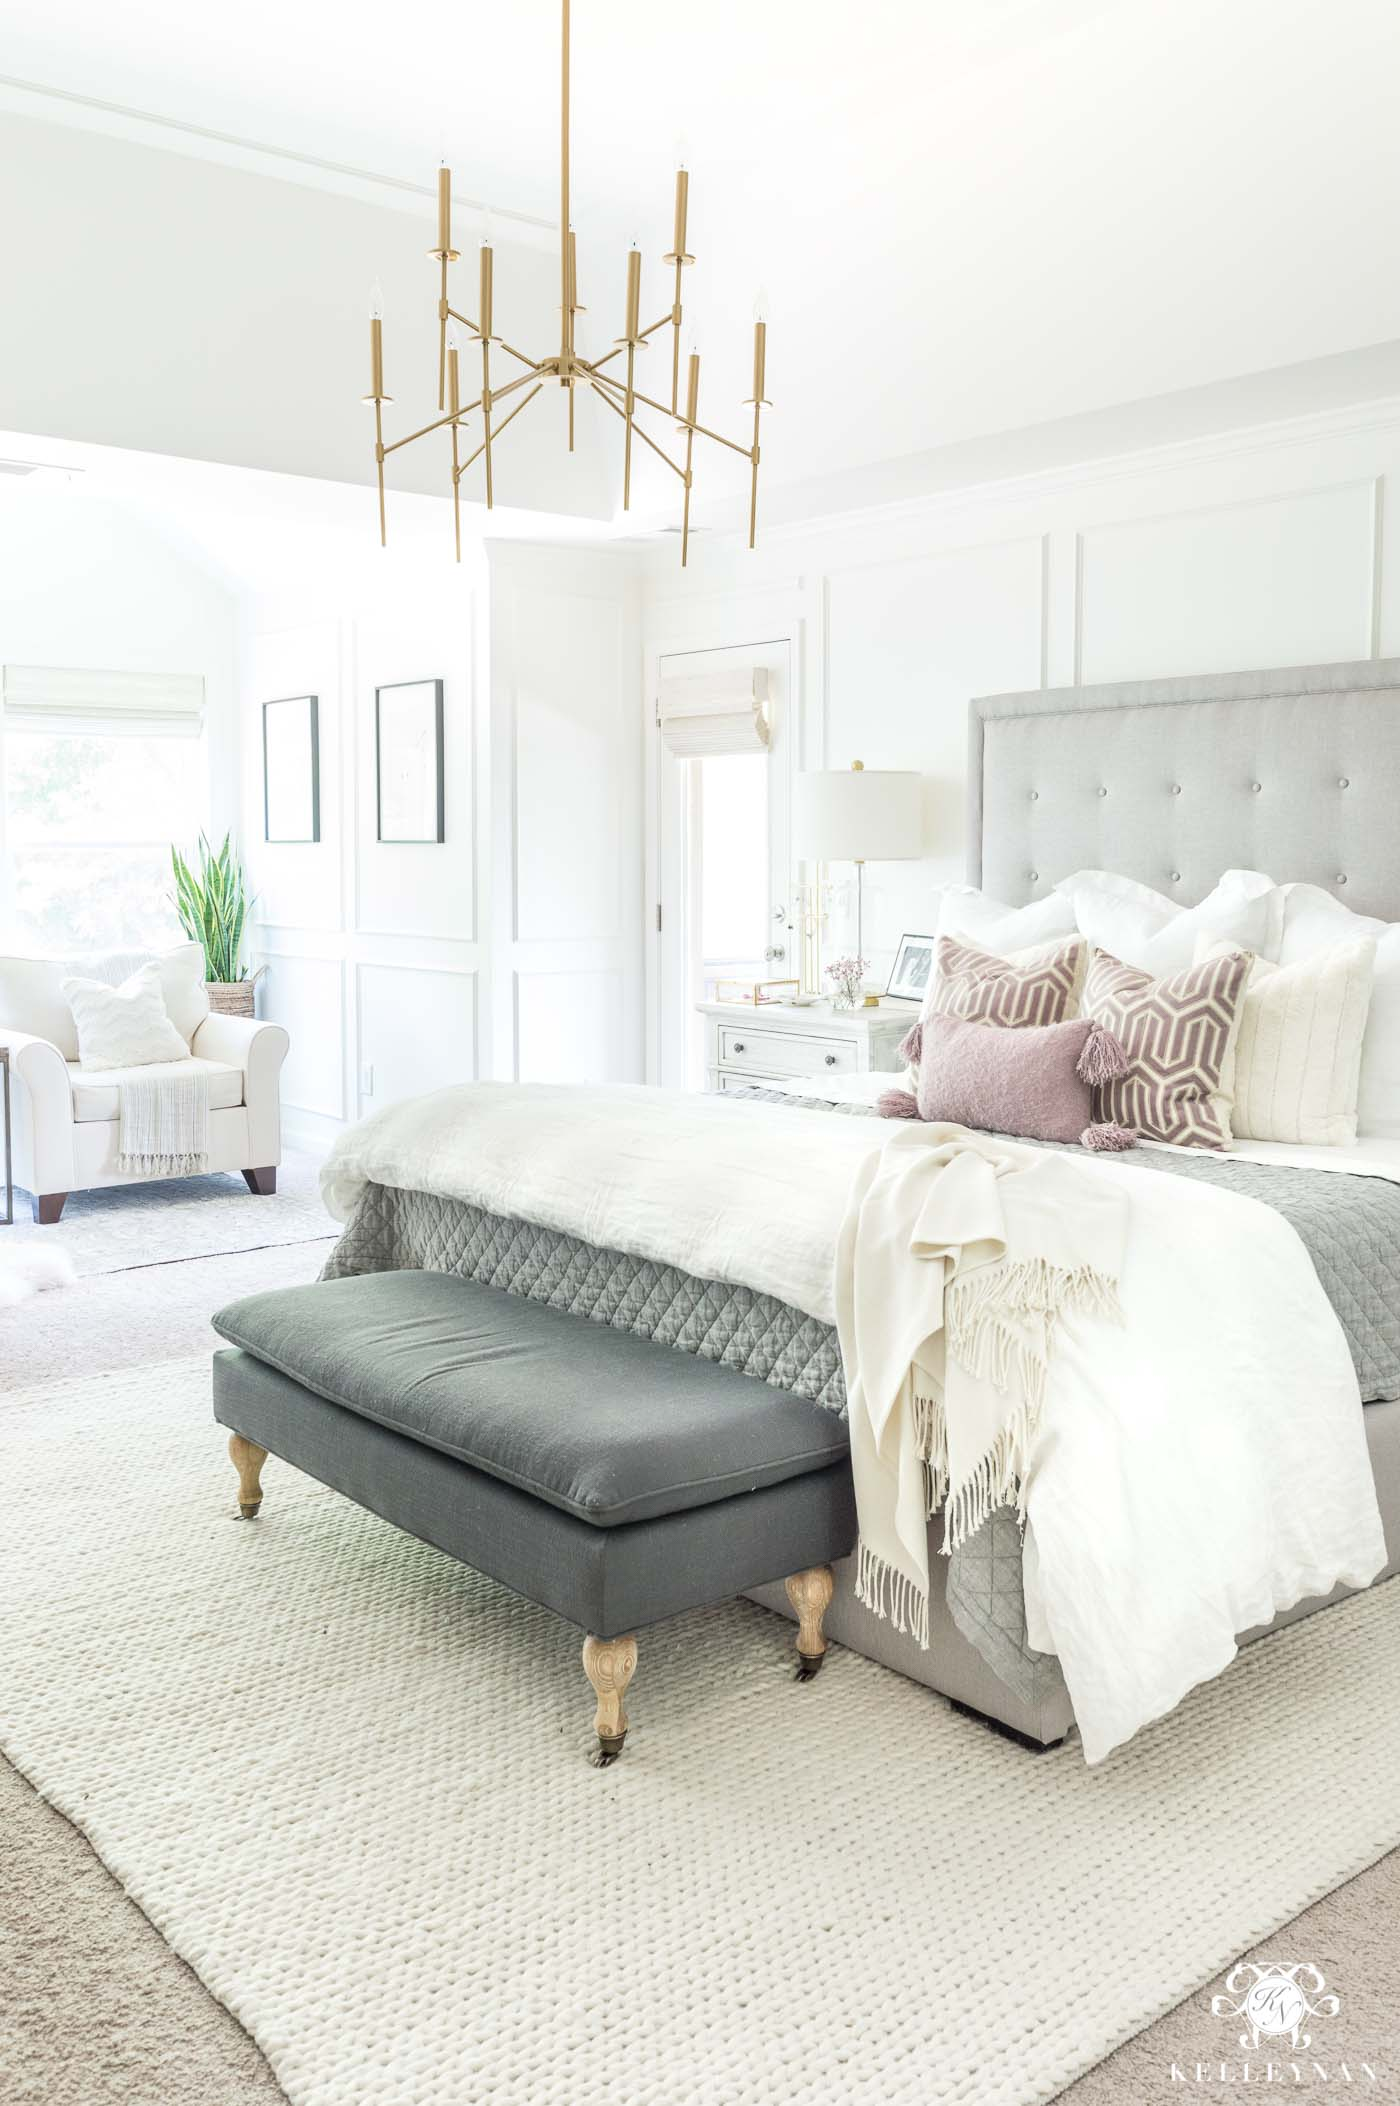 Mixing and matching bedroom furniture and tying together a neutral master retreat with a gray tufted bed and blush pillow accents